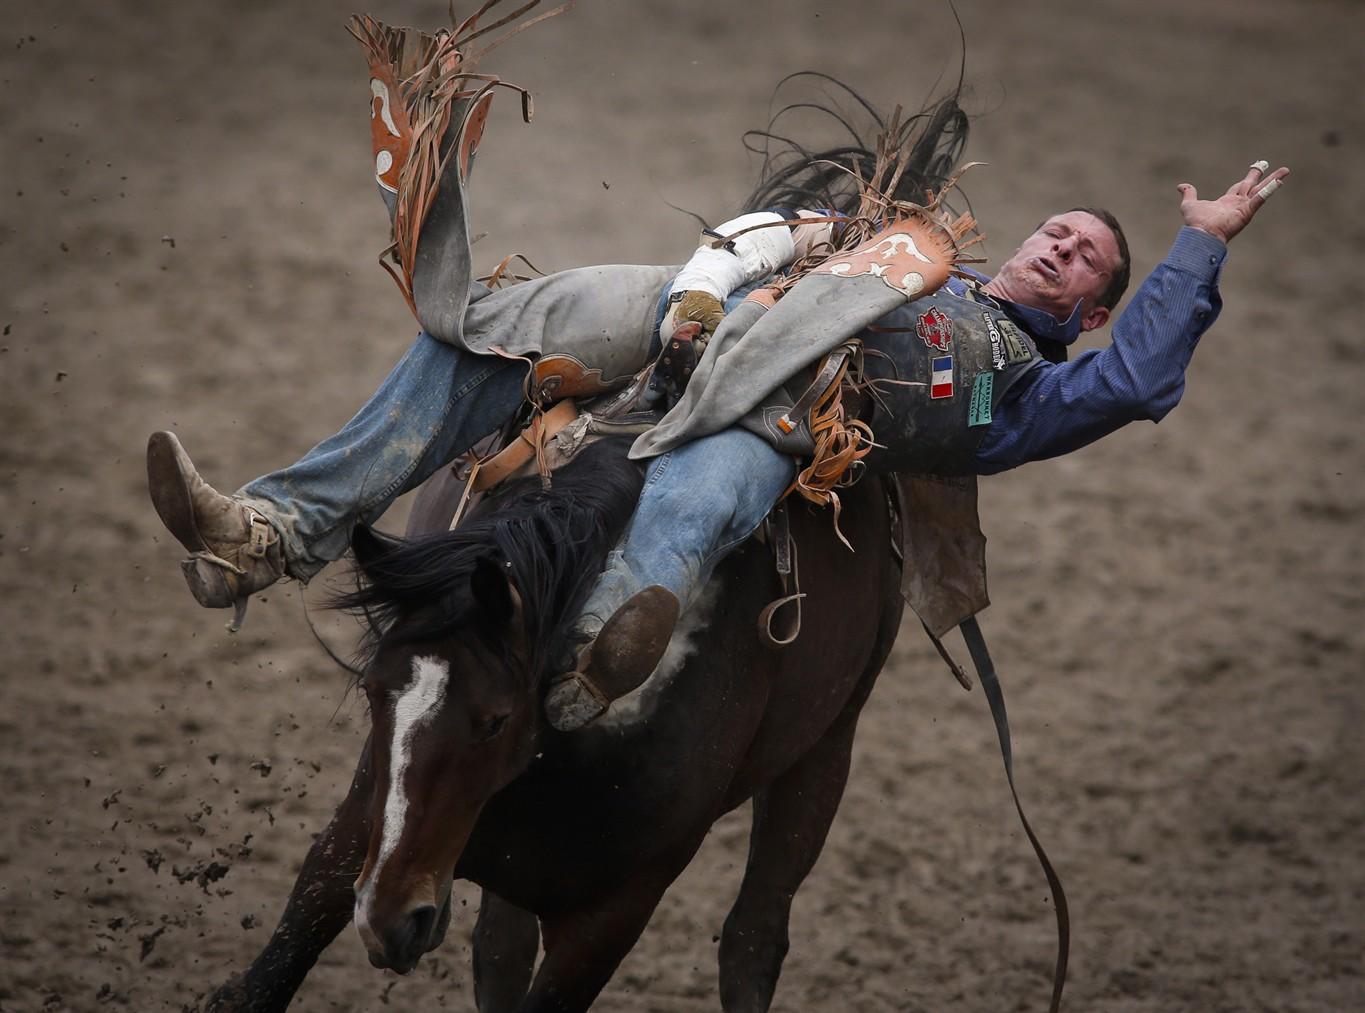 No Deaths Serious Injuries To Animals At Calgary Stampede